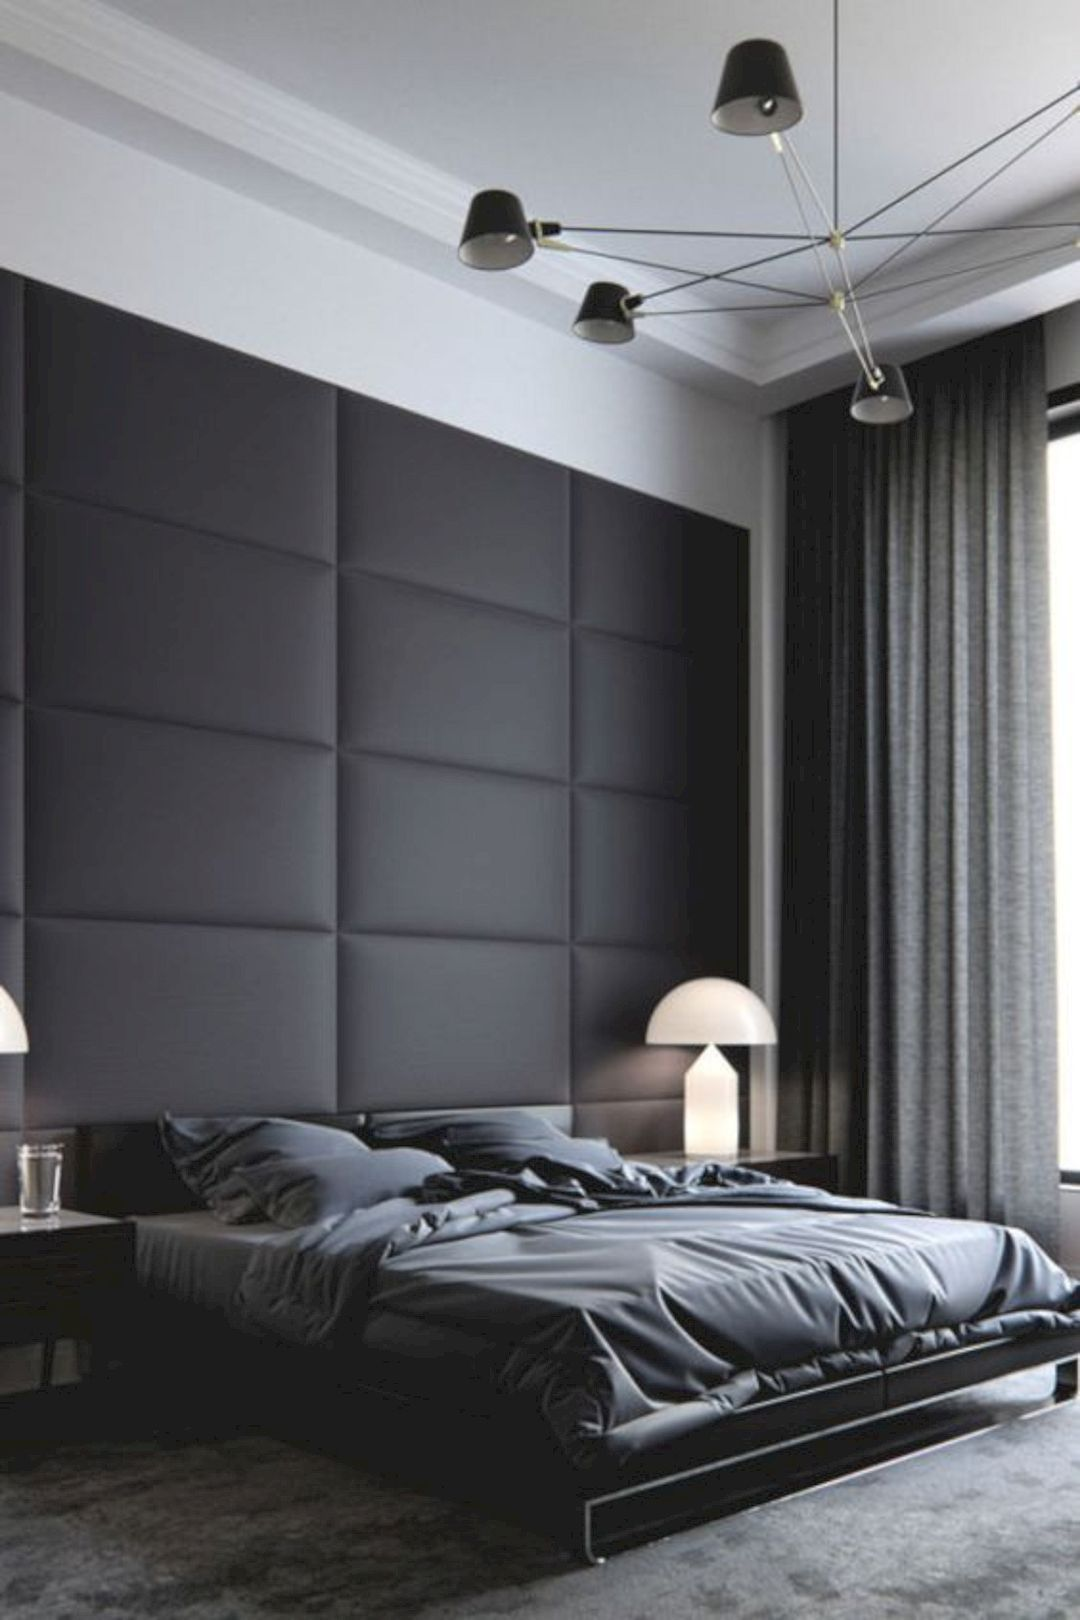 16 Cool Bedroom Interior Design Ideas httpswwwfuturistarchitecturecom